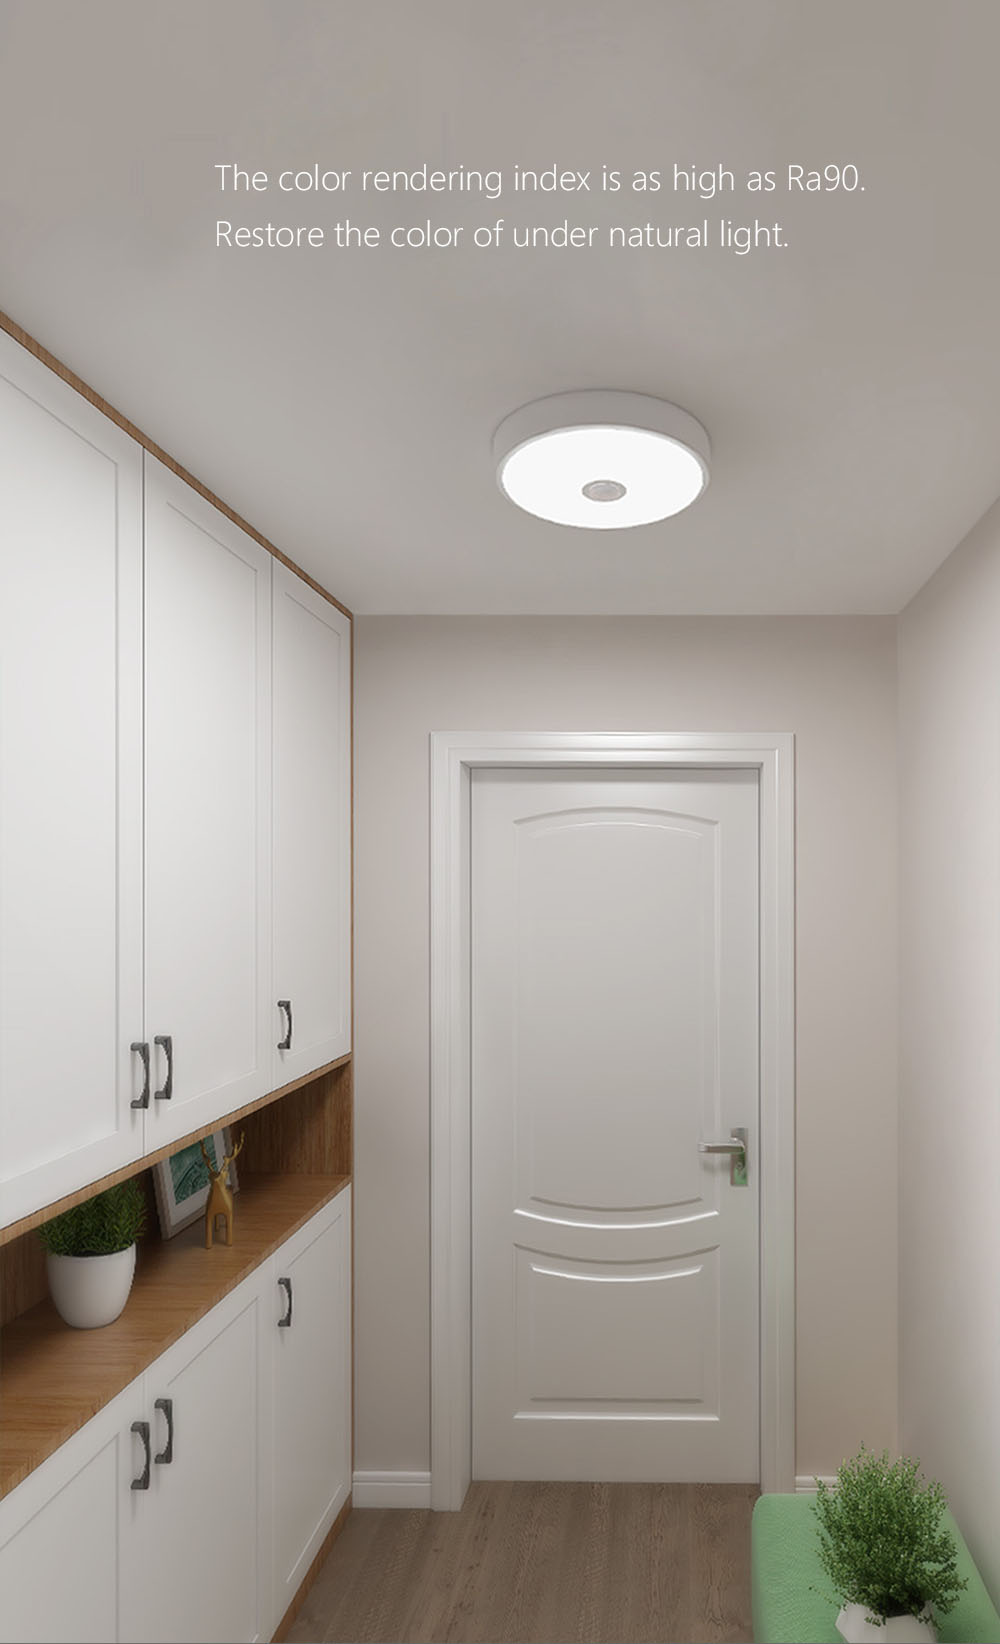 Yeelight YLXD09YL 10W Human Body Motion Sensor LED Ceiling Light Porch Corridor AC220-240V (Xiaomi Ecosystem Product)